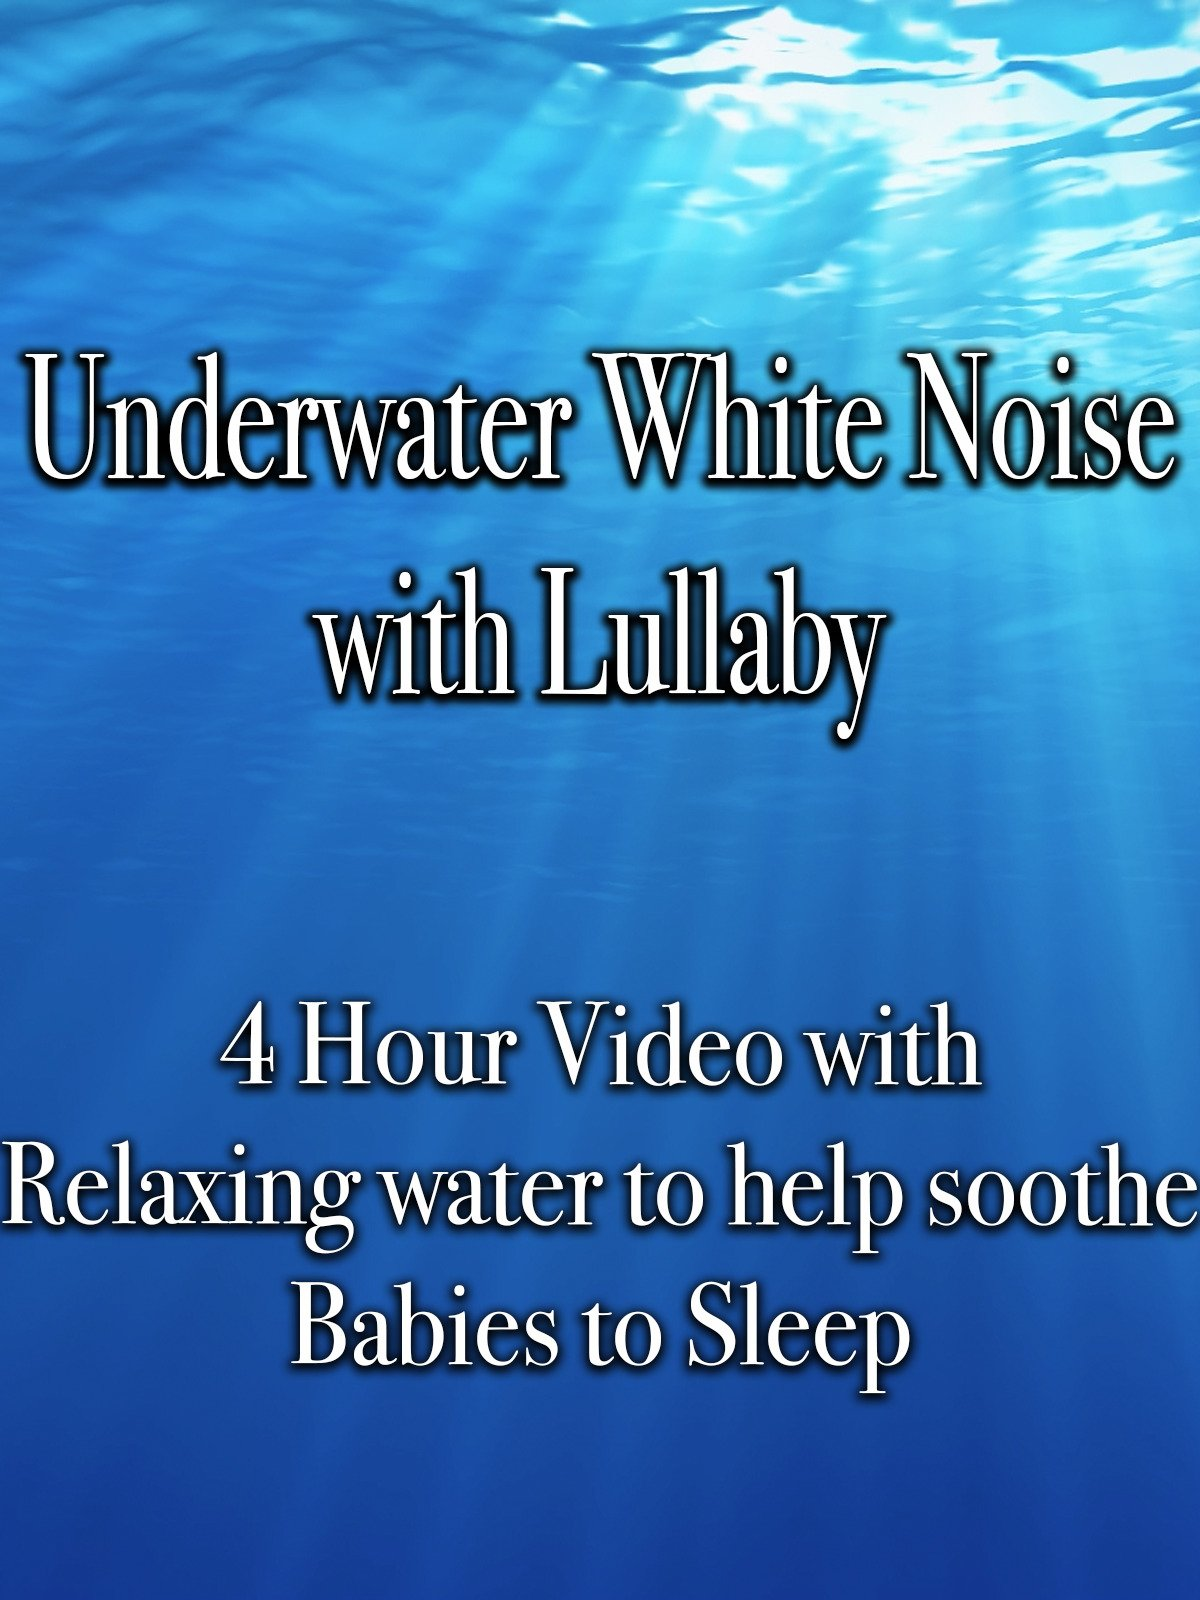 Underwater White Noise with Lullaby 4 Hour Video with Relaxing water to help soothe Babies to Sleep